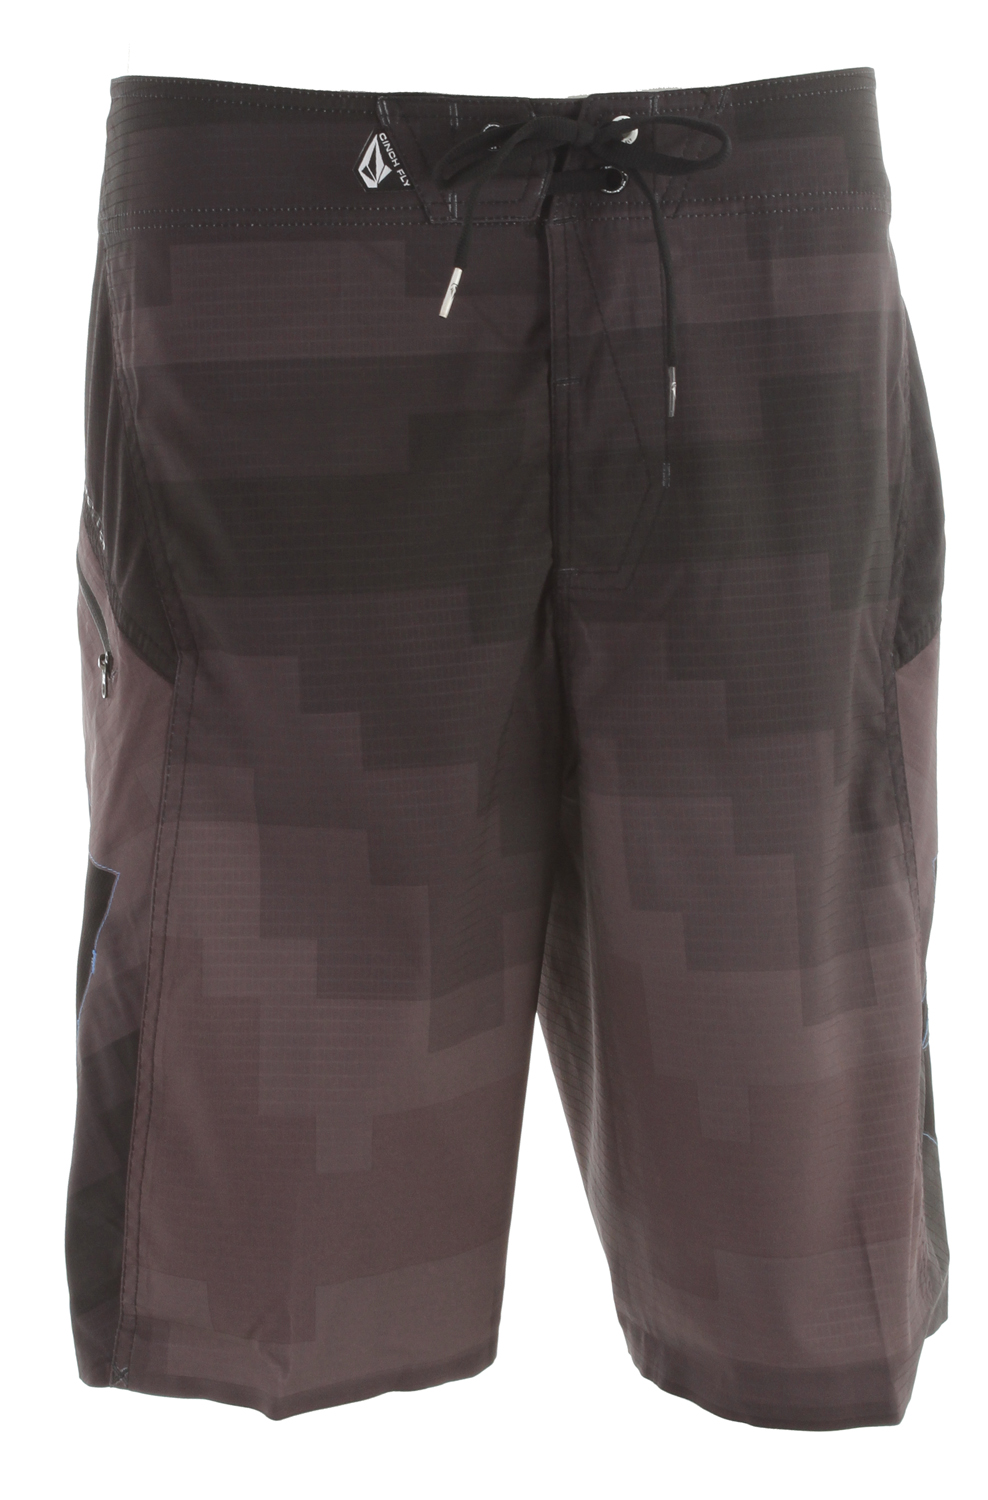 "Surf If its bells and whistles you want, the V6S Pixelater will blow your mind. Our most resilient boardshort yet with 6 Way stretch and ultra light 2-Way Grid Dry that actually repels water. Even better, these bad boys have no inseam. So you can expect smoother-than-smooth comfort even during marathon sessions. Includes a zip pockets and Cinch Fly Technology. 21"" outseam. 93% polyester/7% elastane 2 Way Stretch Grid-Dry - $40.95"